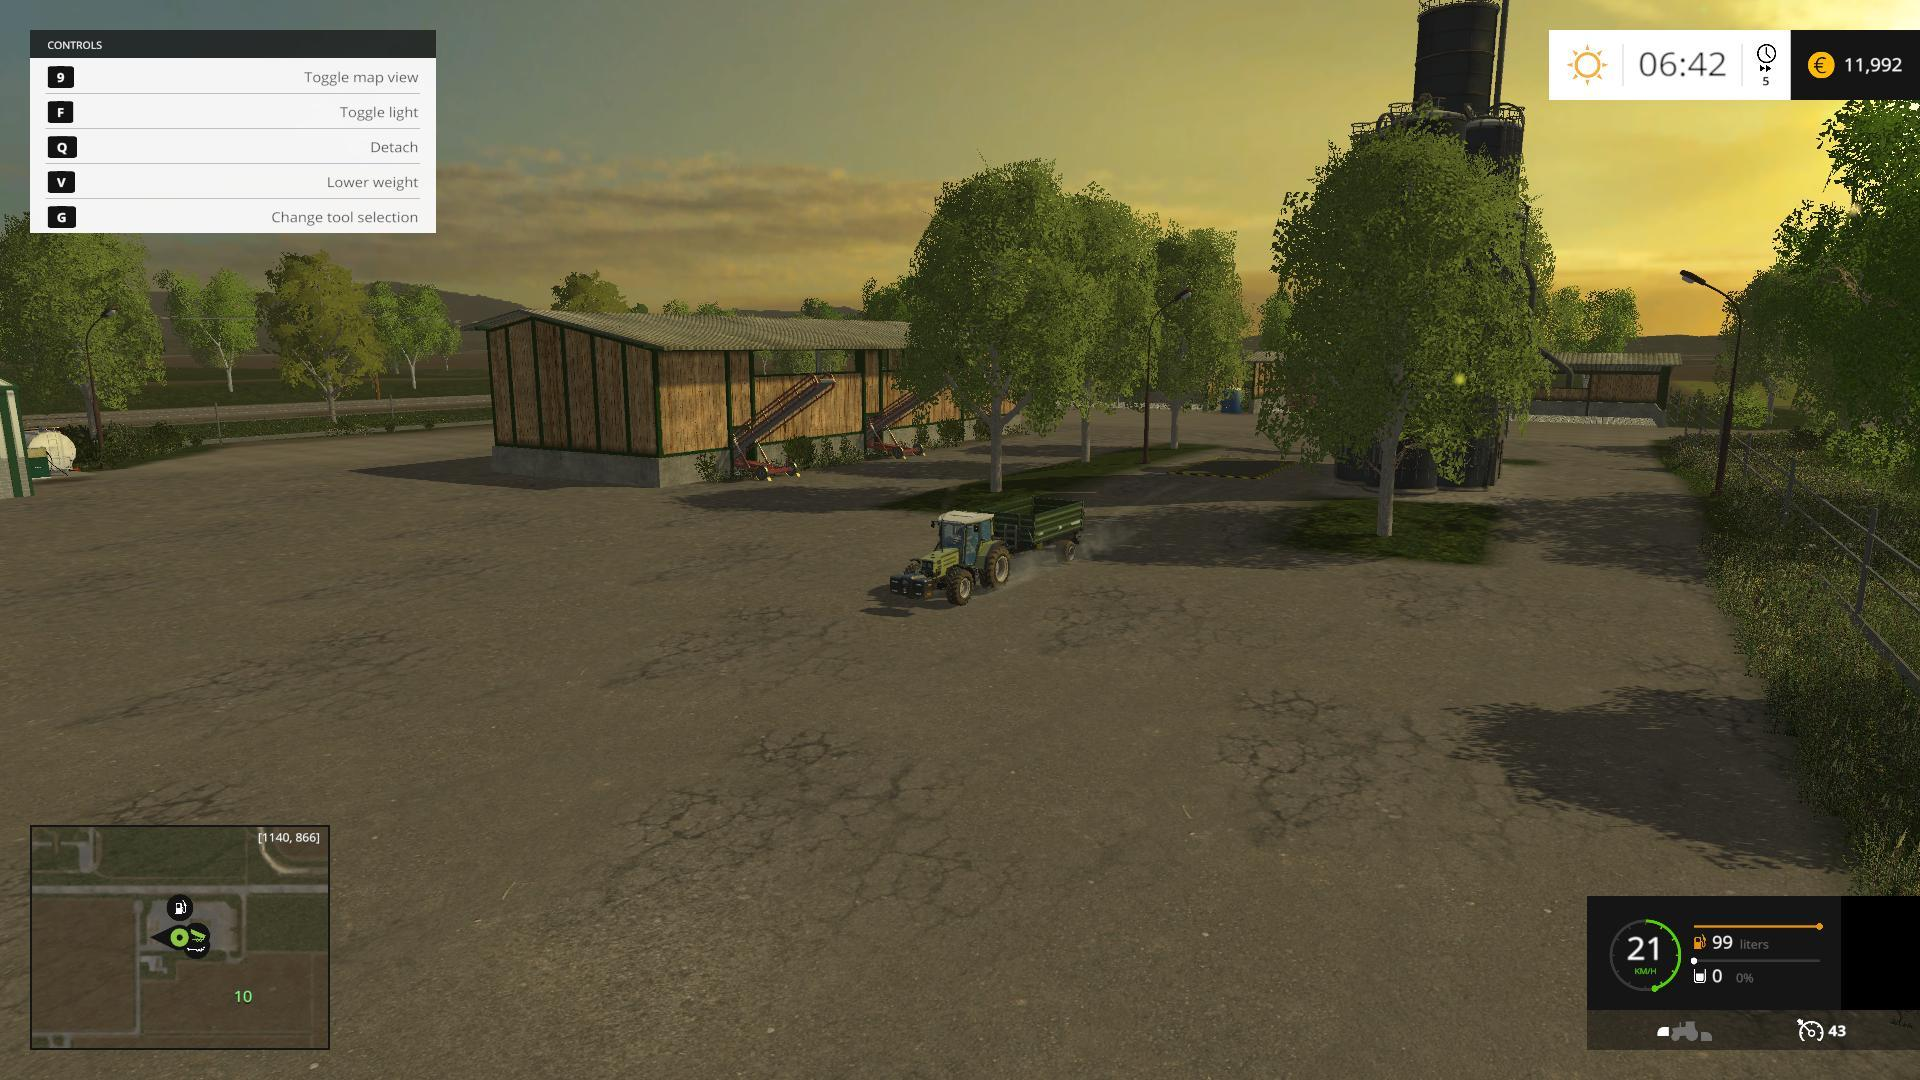 VALLEY EAST USA MAP Farming simulator 2017 2015 15 17 LS mod